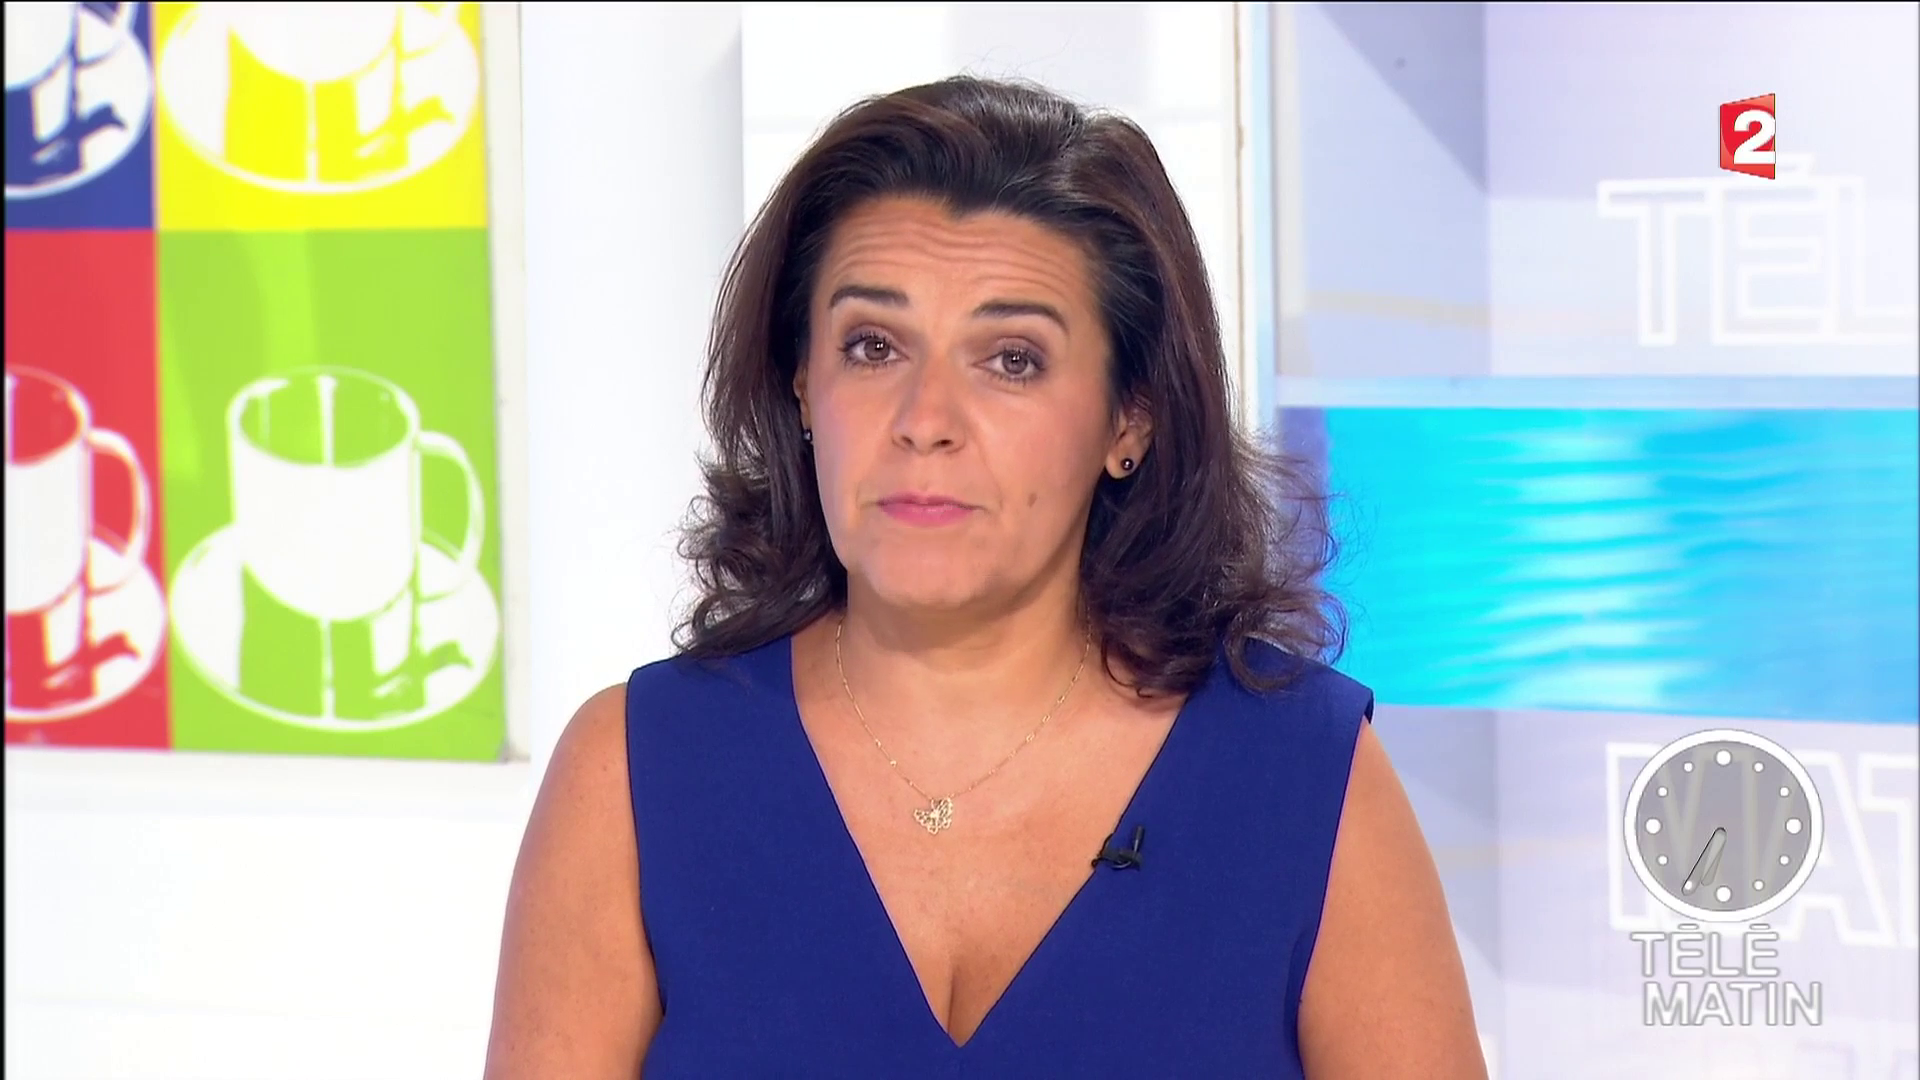 patriciacharbonnier01.2015_08_06_meteotelematinFRANCE2